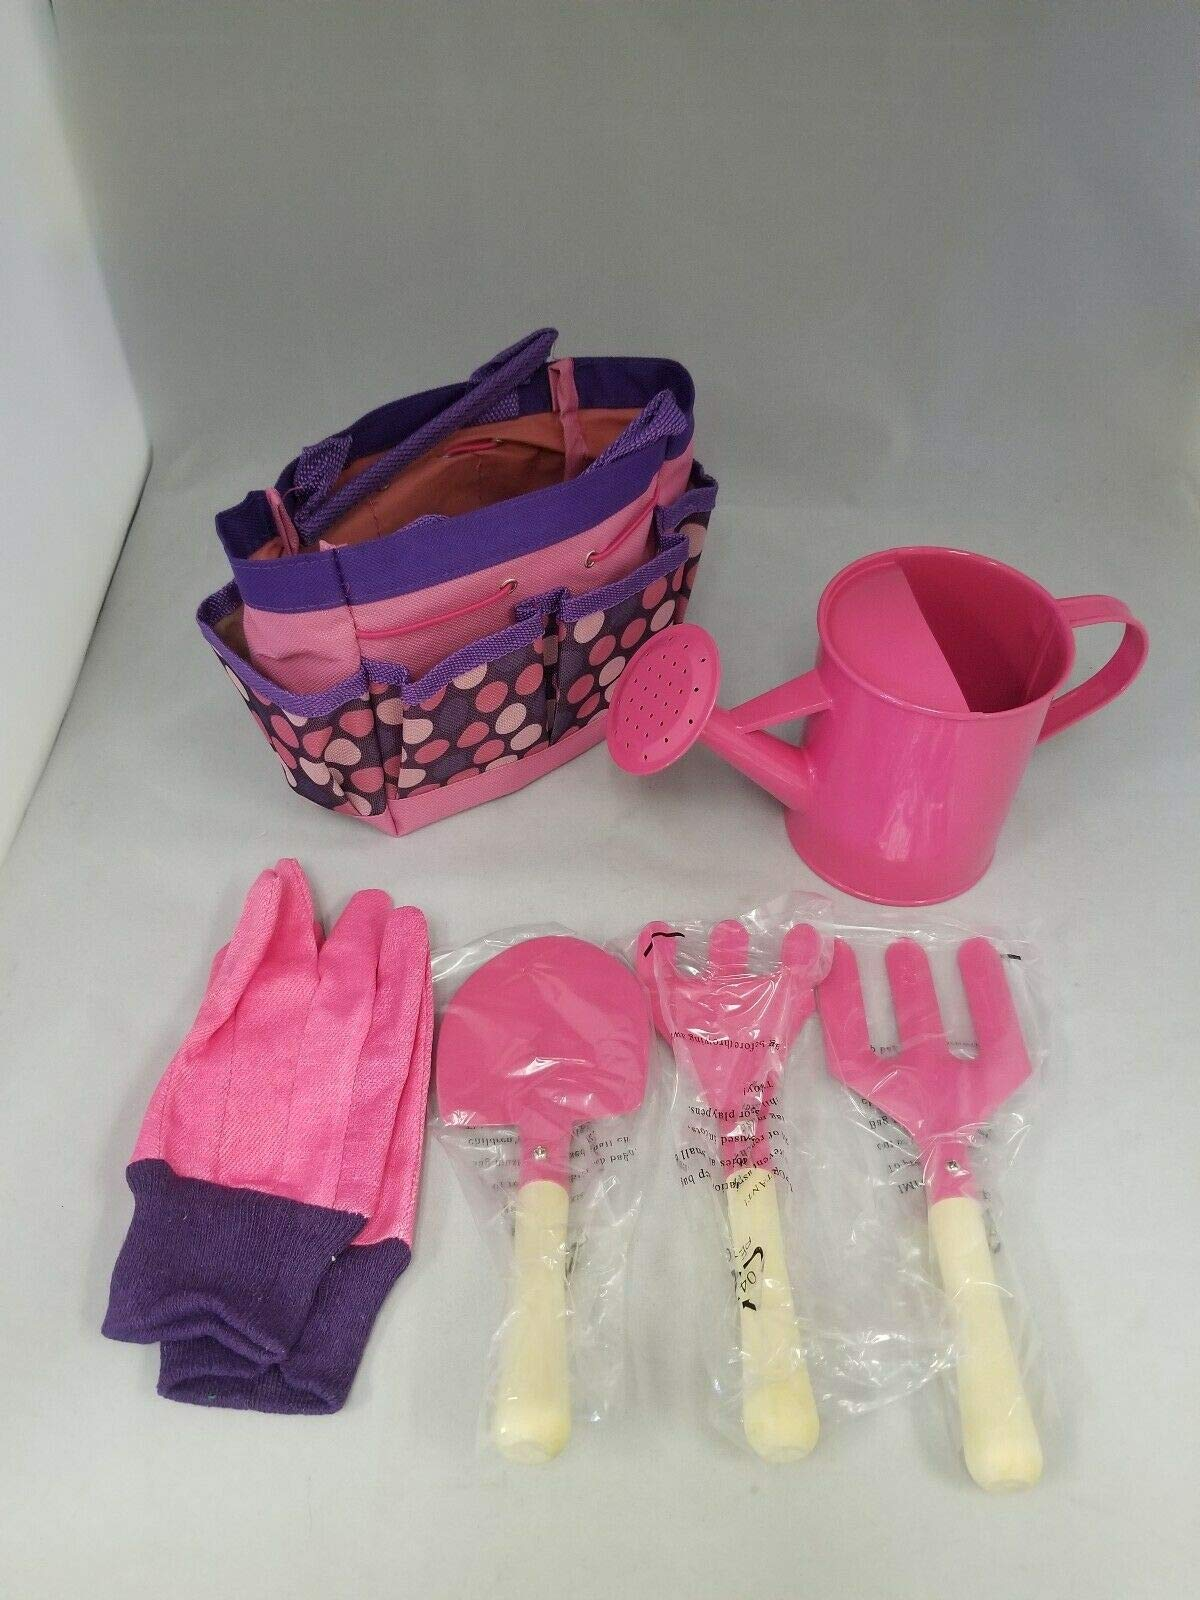 miracle9 Gardenline Children's Garden Tool Set Watering Can Gloves Tools in a Bag - Pink